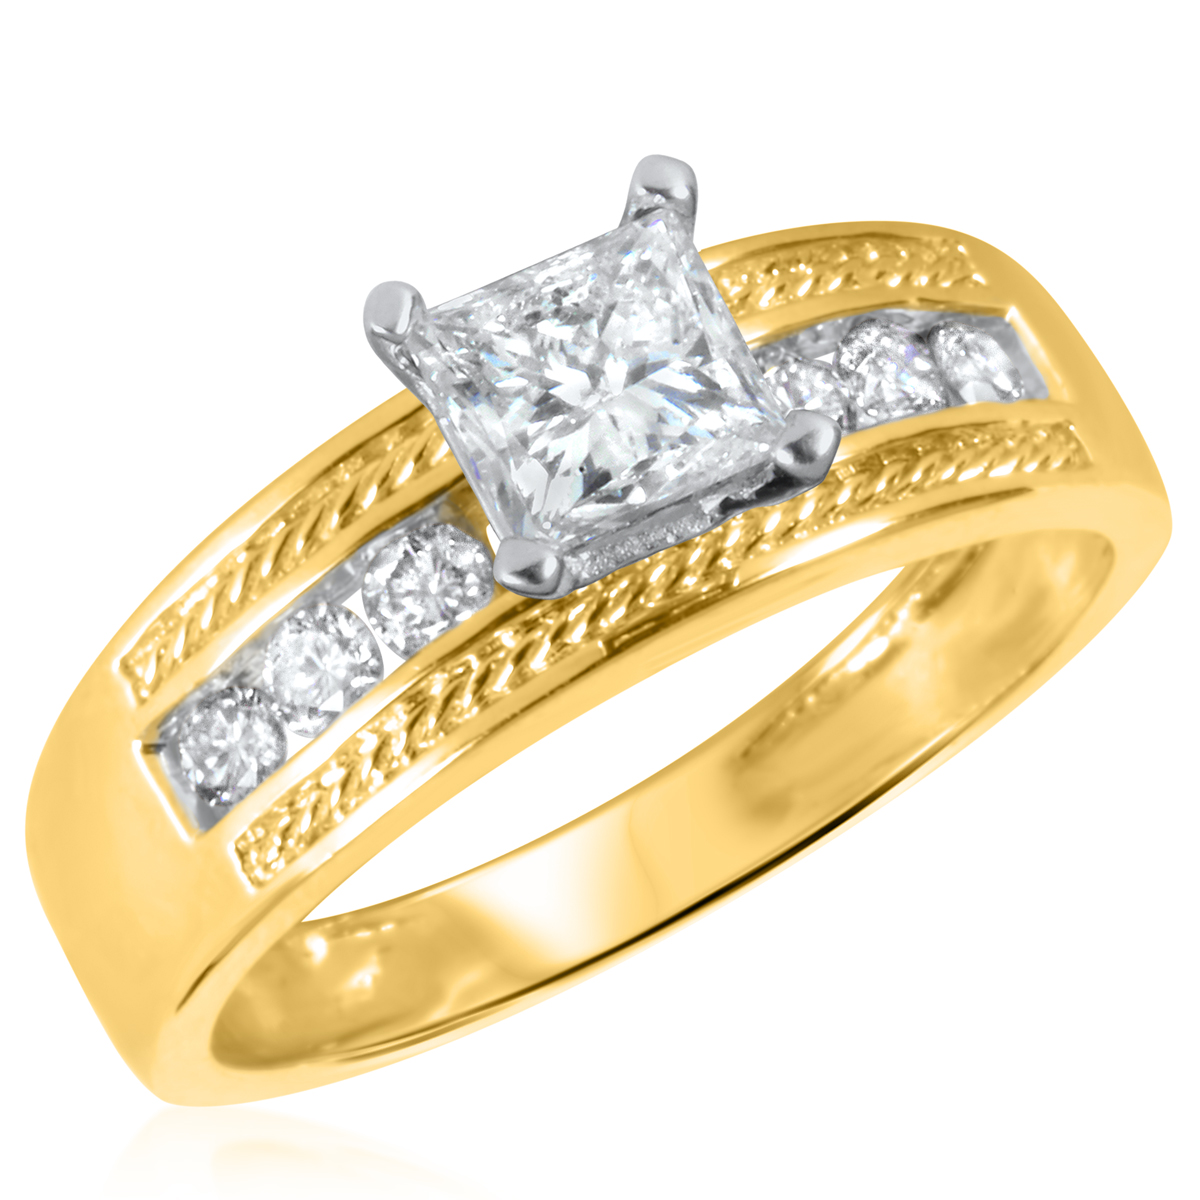 1 CT. T.W. Diamond Ladies Engagement Ring 14K Yellow Gold- Size 8